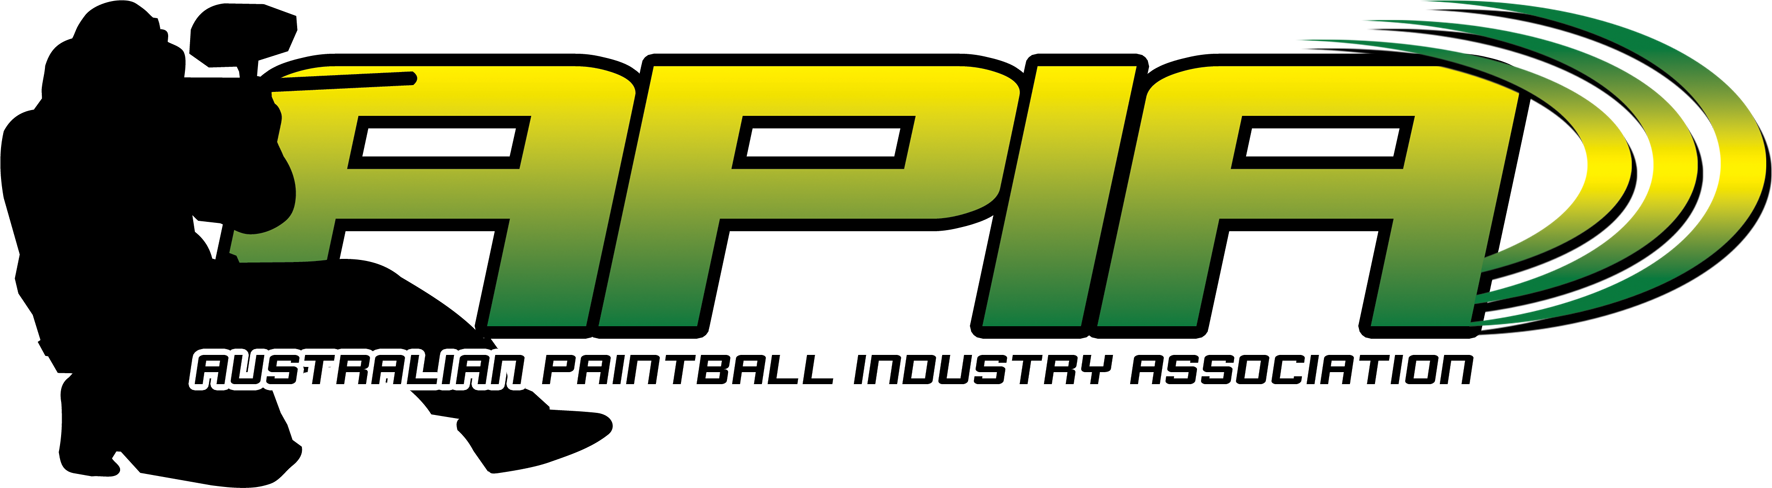 Campaigning for the Australian paintball industry